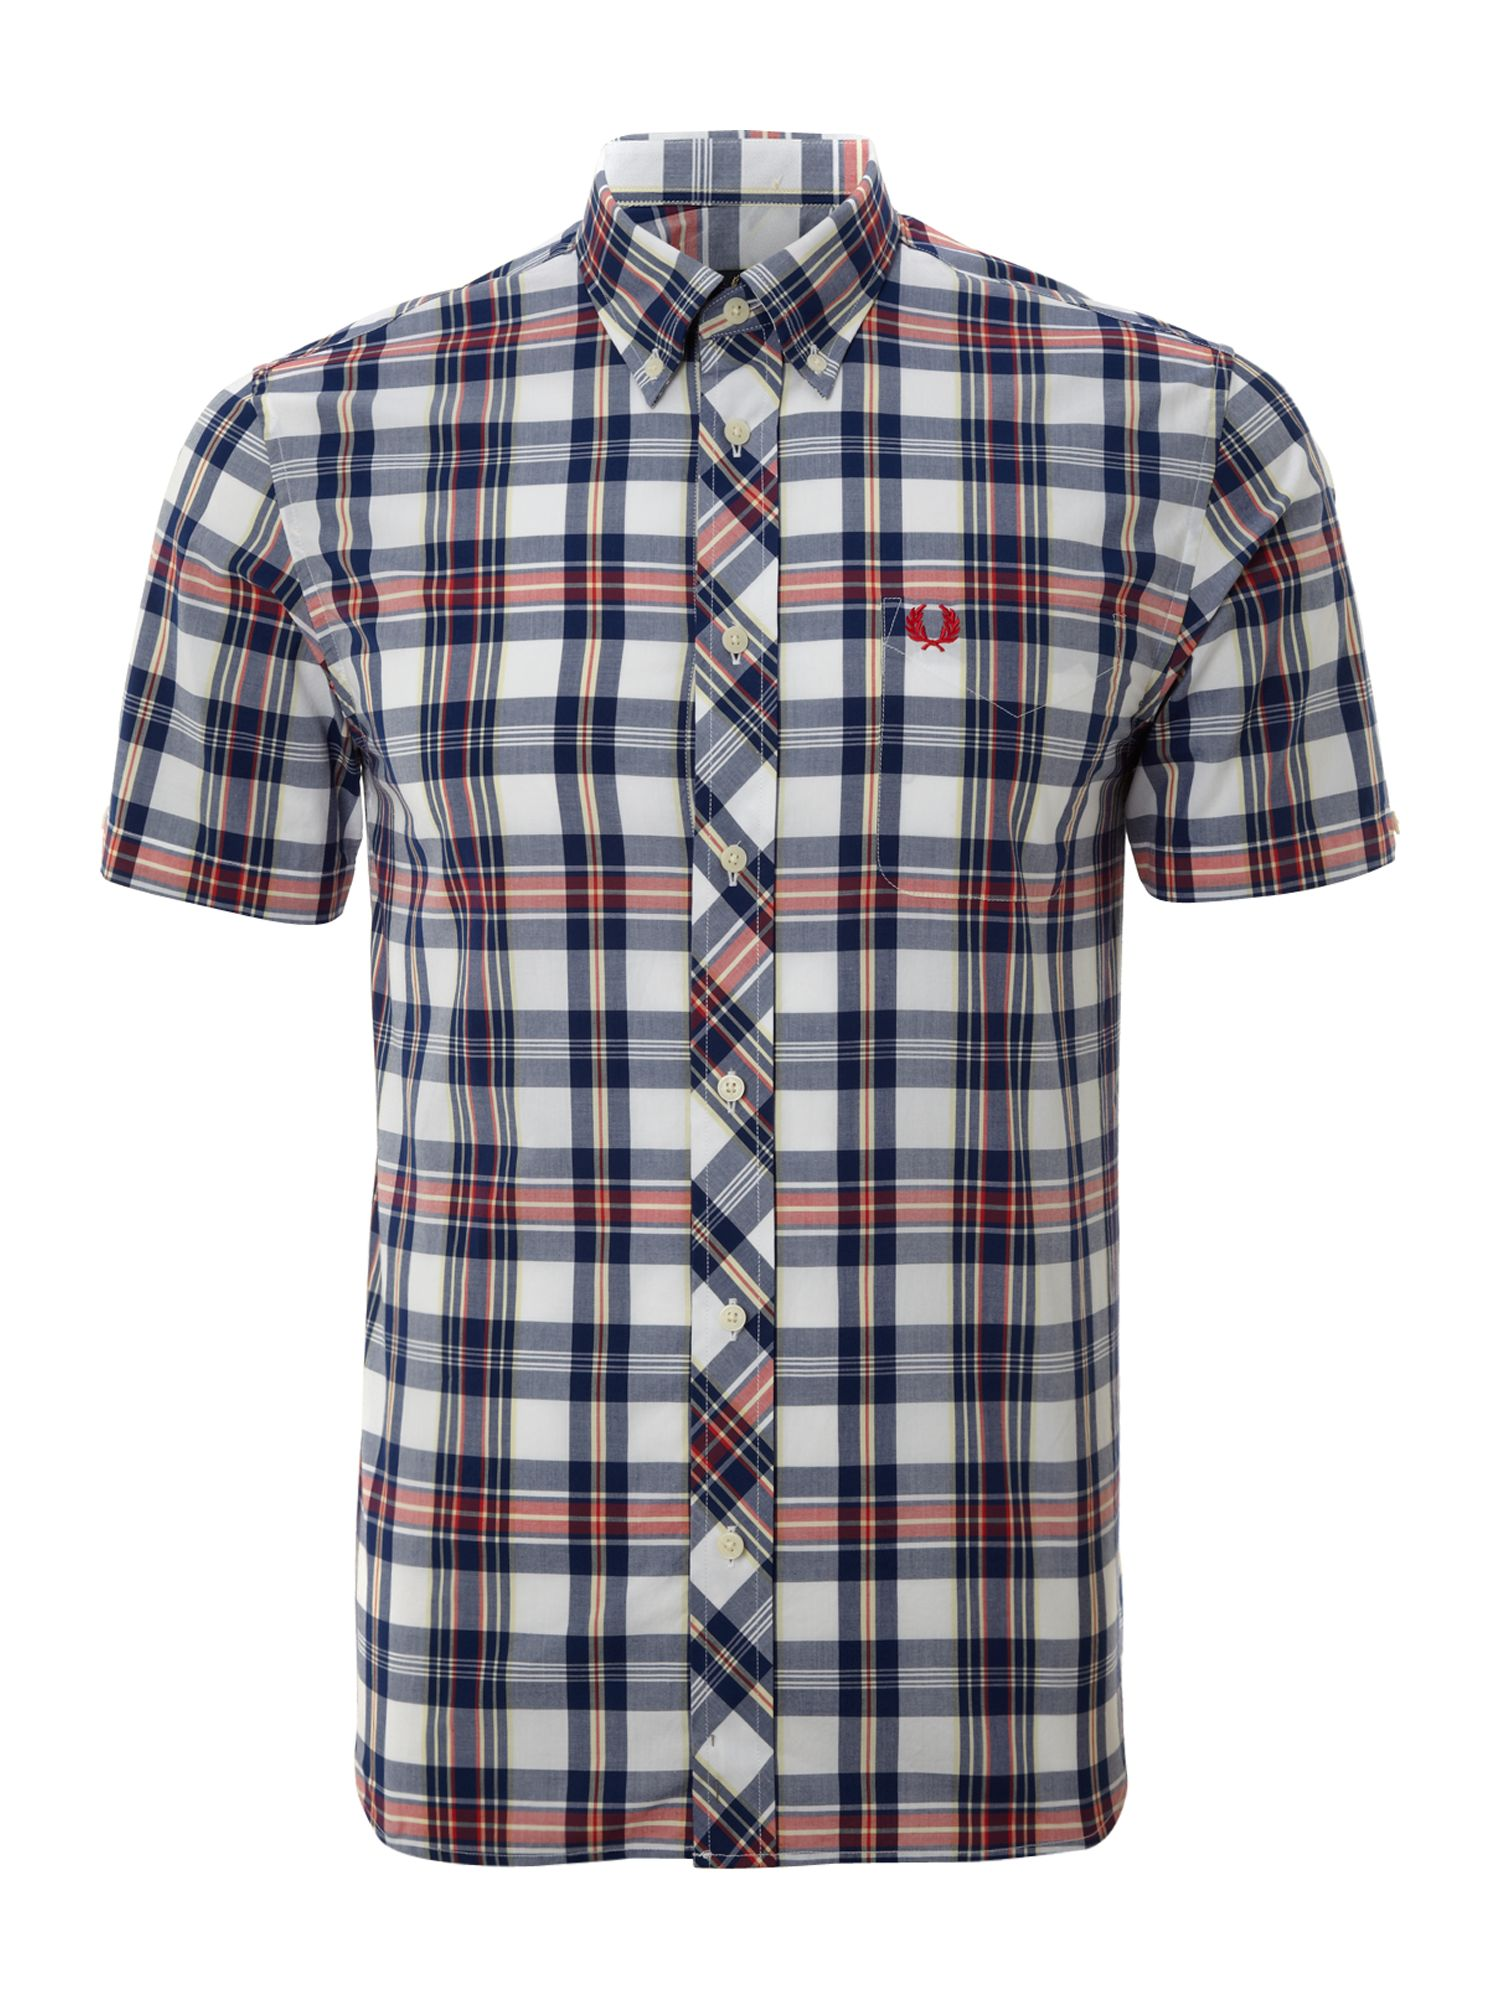 Short sleeved bold checked shirt